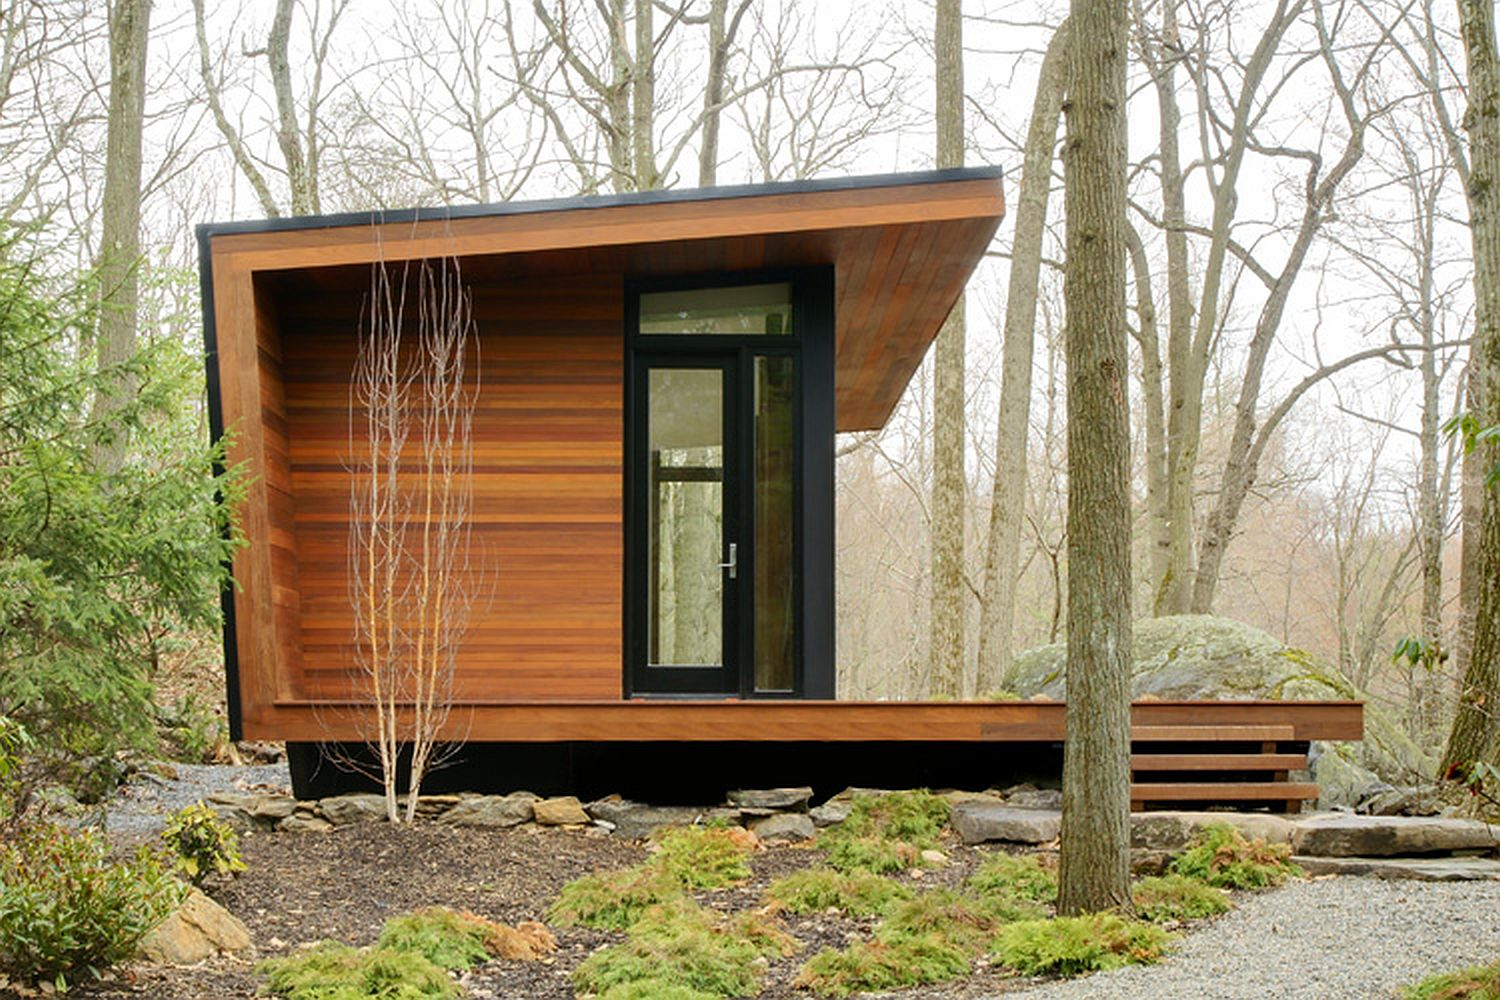 Gallery a modern studio retreat in the woods workshop Contemporary small homes